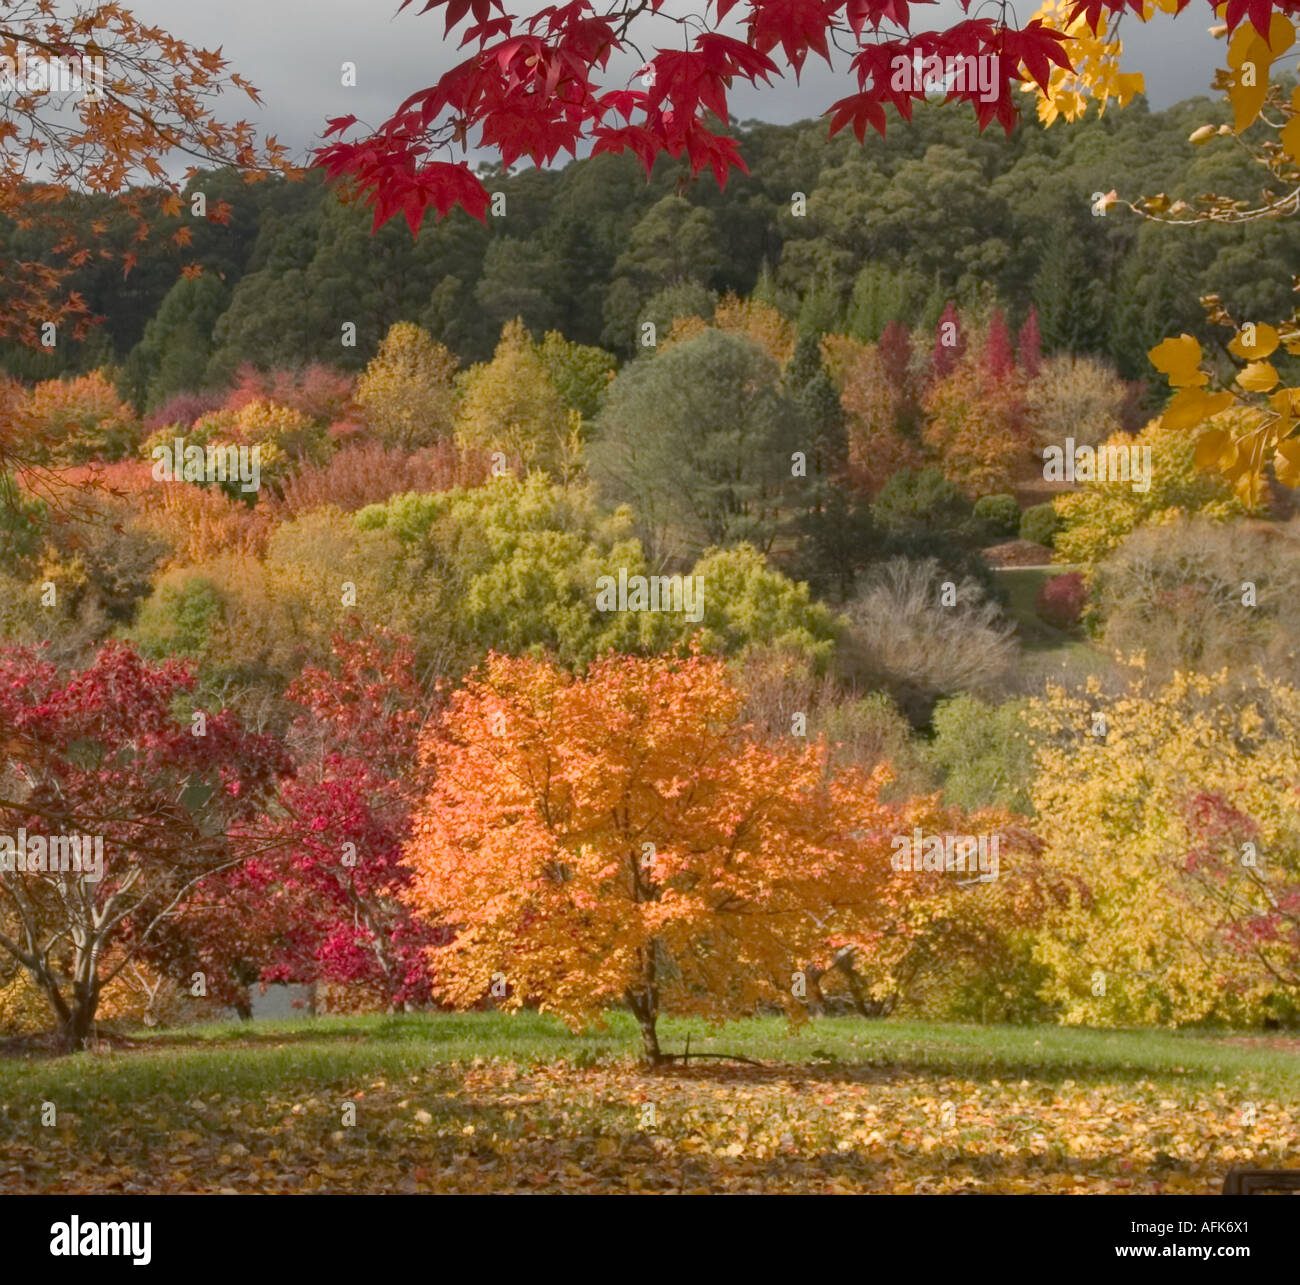 AUTUMN VIEW MOUNT LOFTY GARDENS ADELAIDE SOUTH AUSTRALIA Stock